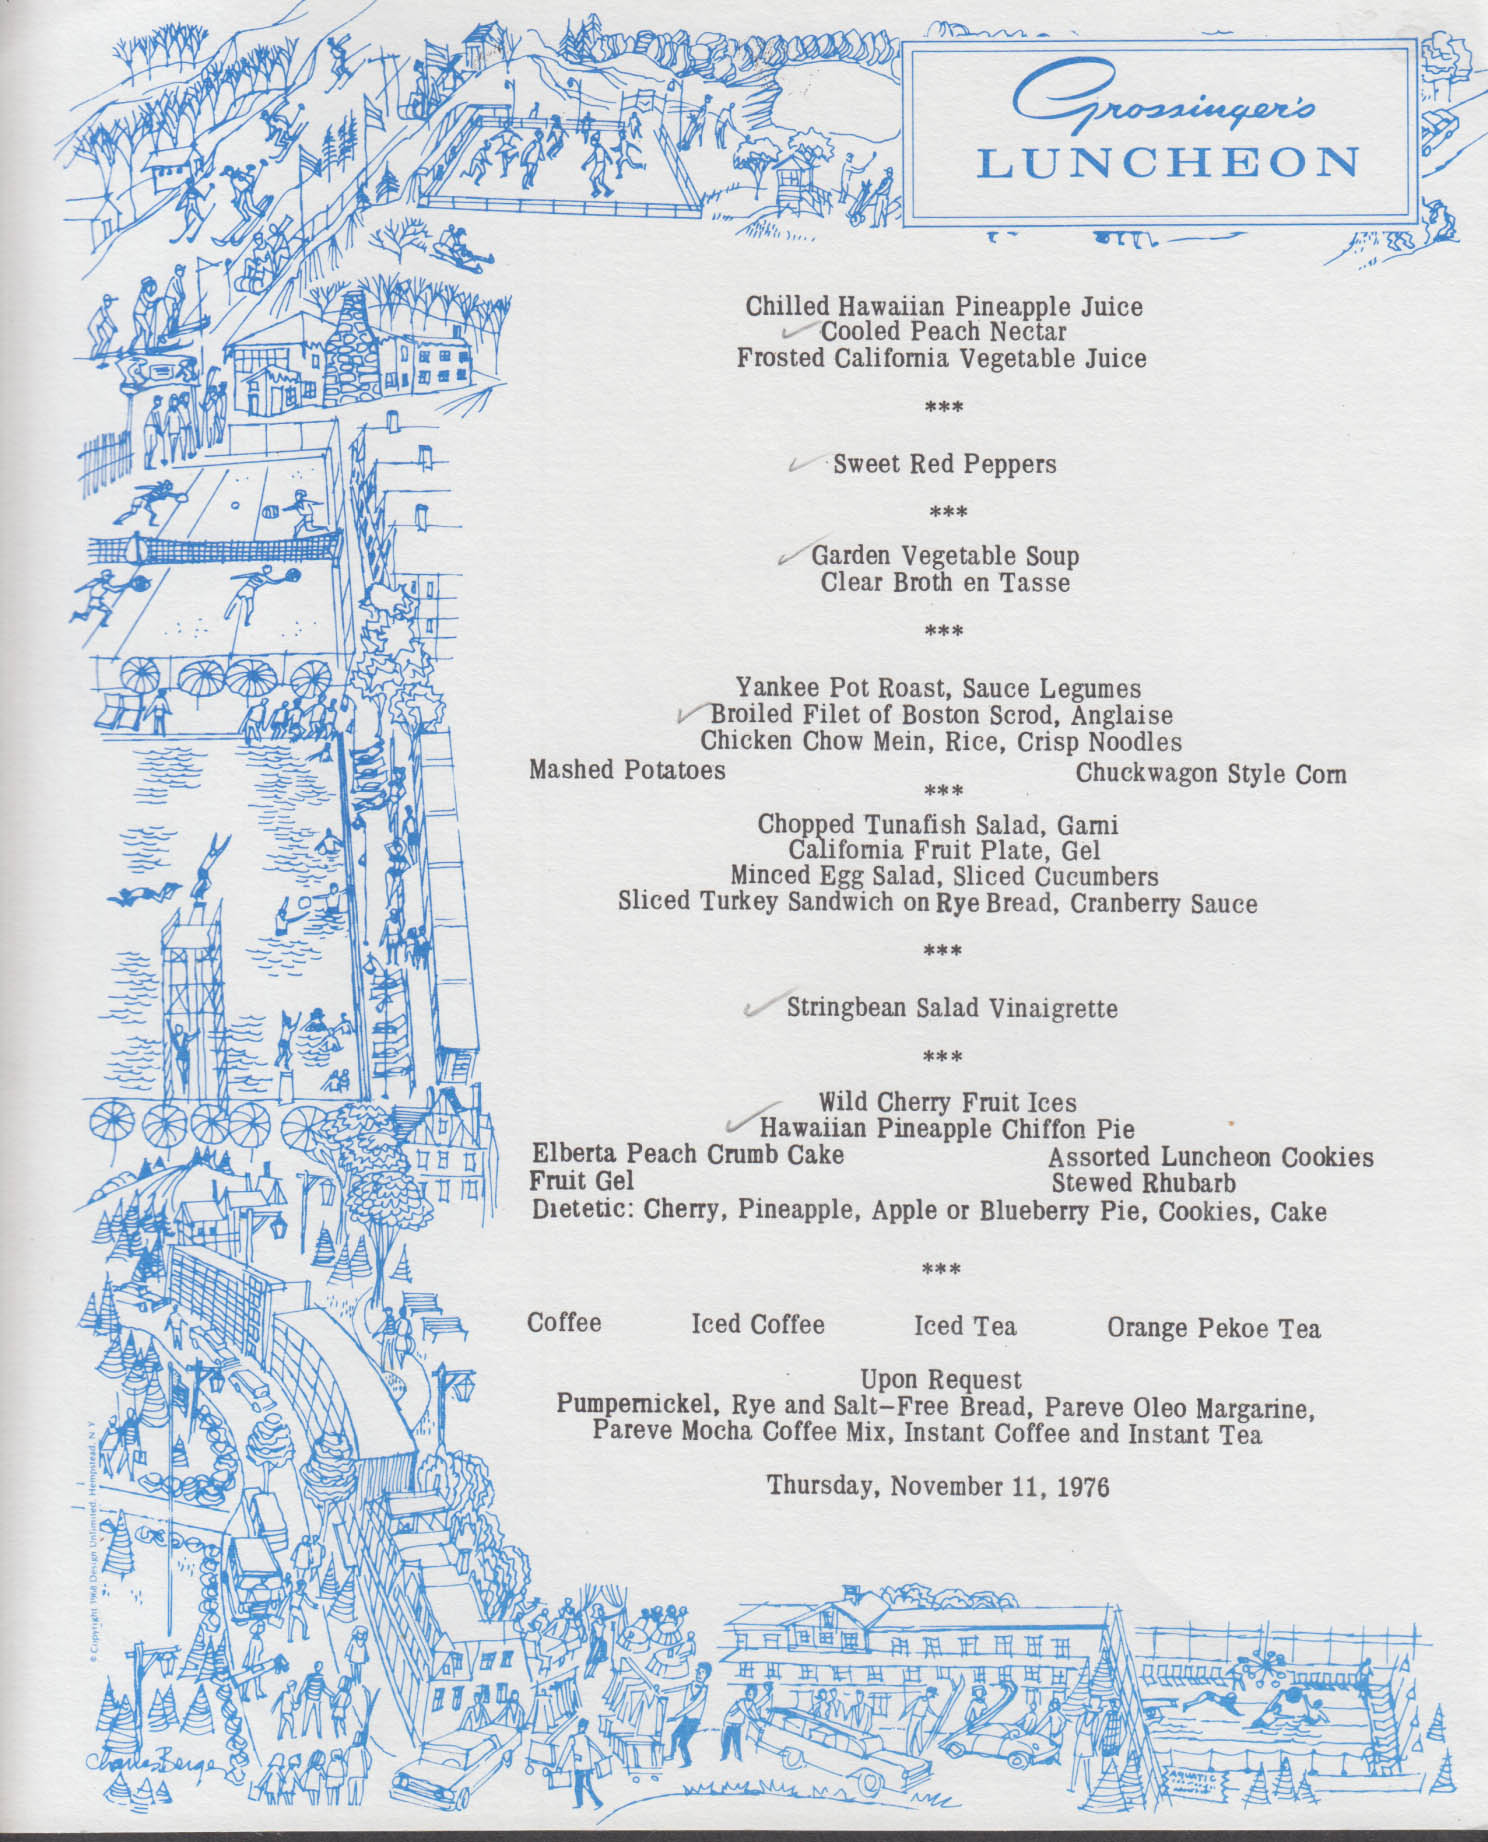 Grossinger's Resort Luncheon Menu card 11/11 1976 Liberty NY